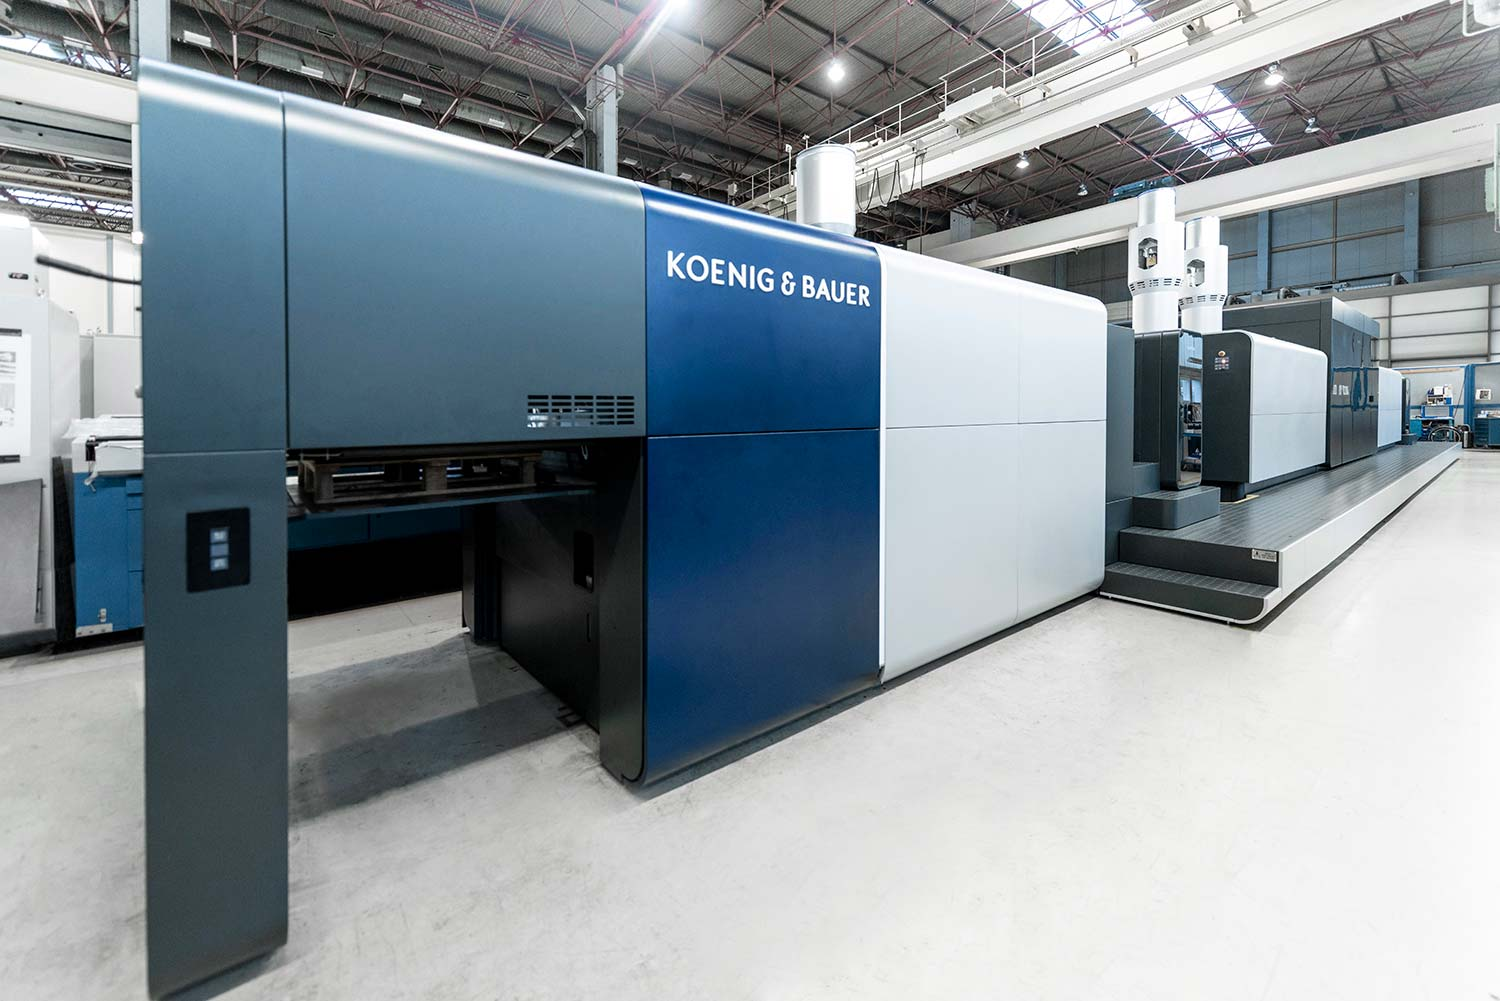 Award for a coming icon of digital print | Koenig & Bauer